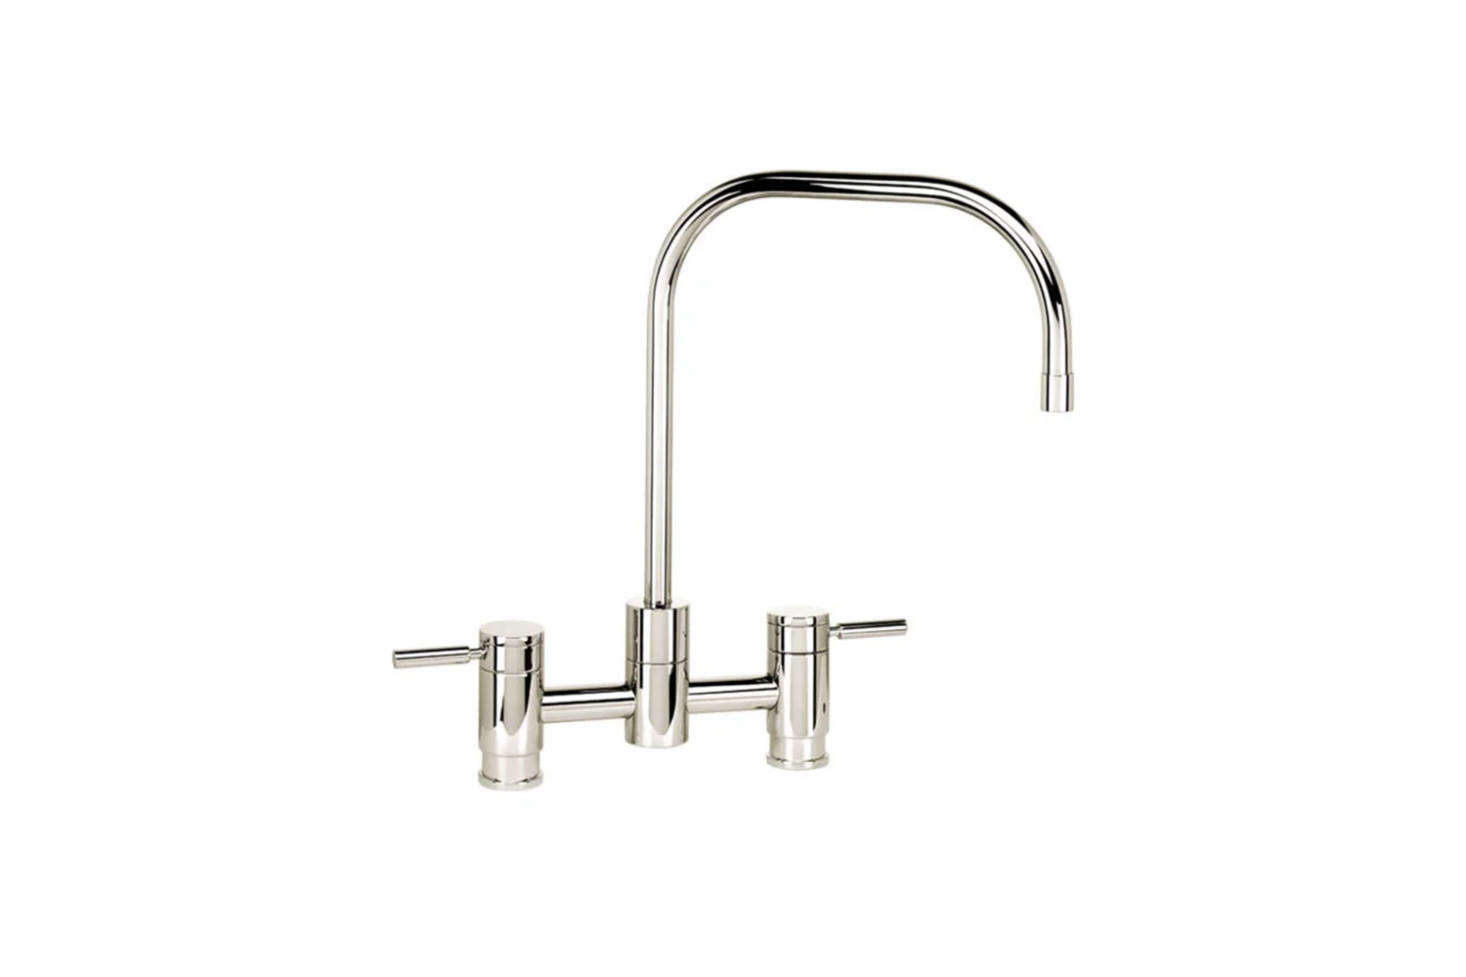 The Waterstone Fulton Suite Bridge Faucet with Side Spray has a slender spout and comes in a whopping 31 different finishes; $1,725 at Quality Bath.